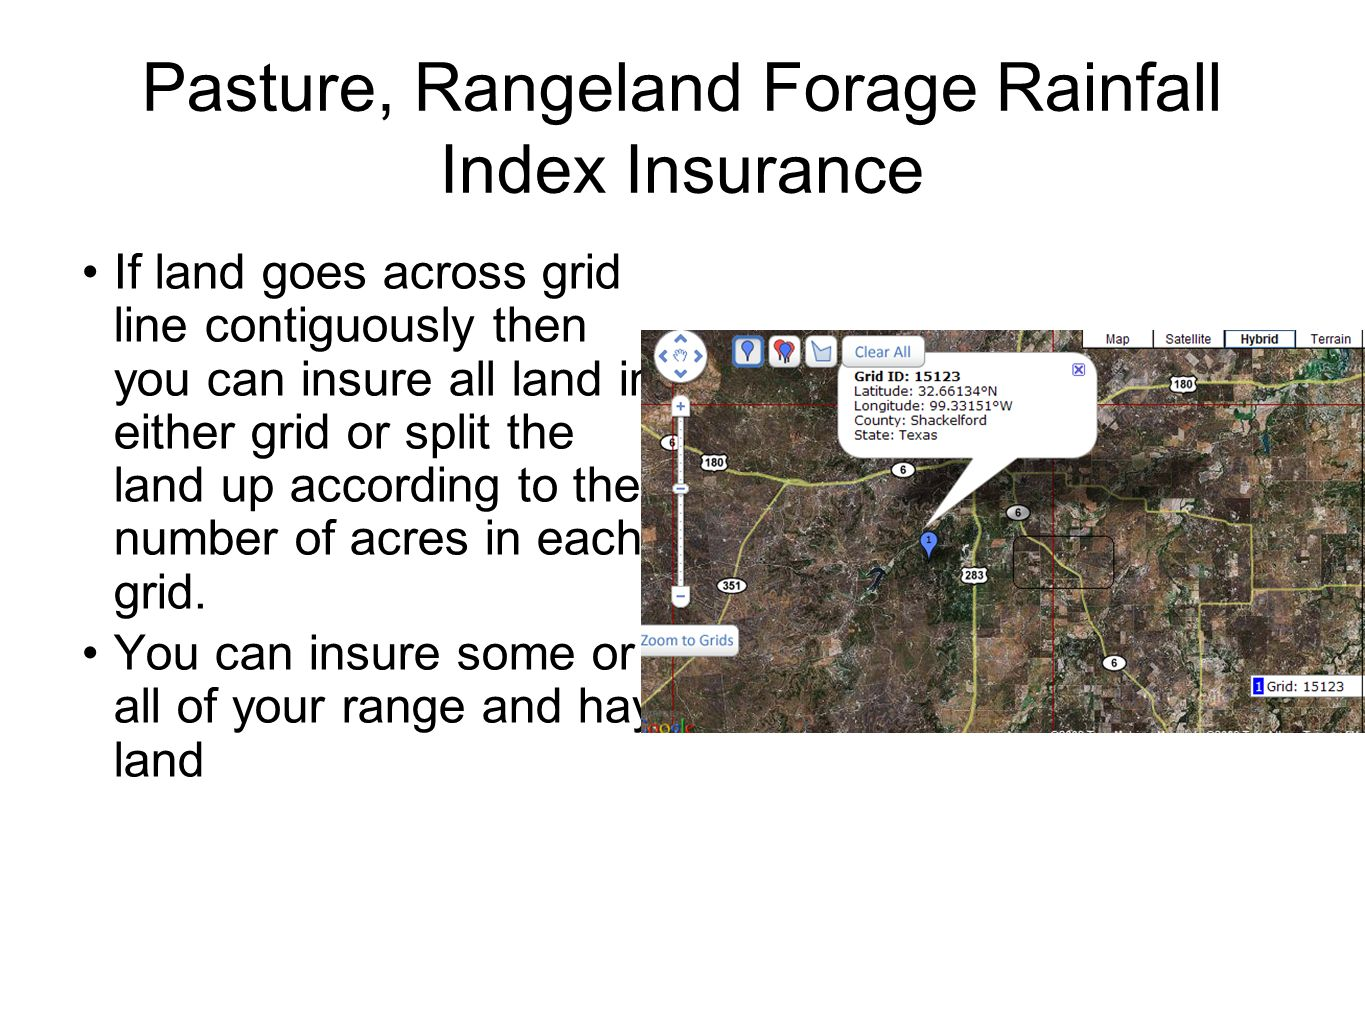 Pasture, Rangeland Forage Rainfall Index Insurance If land goes across grid line contiguously then you can insure all land in either grid or split the land up according to the number of acres in each grid.